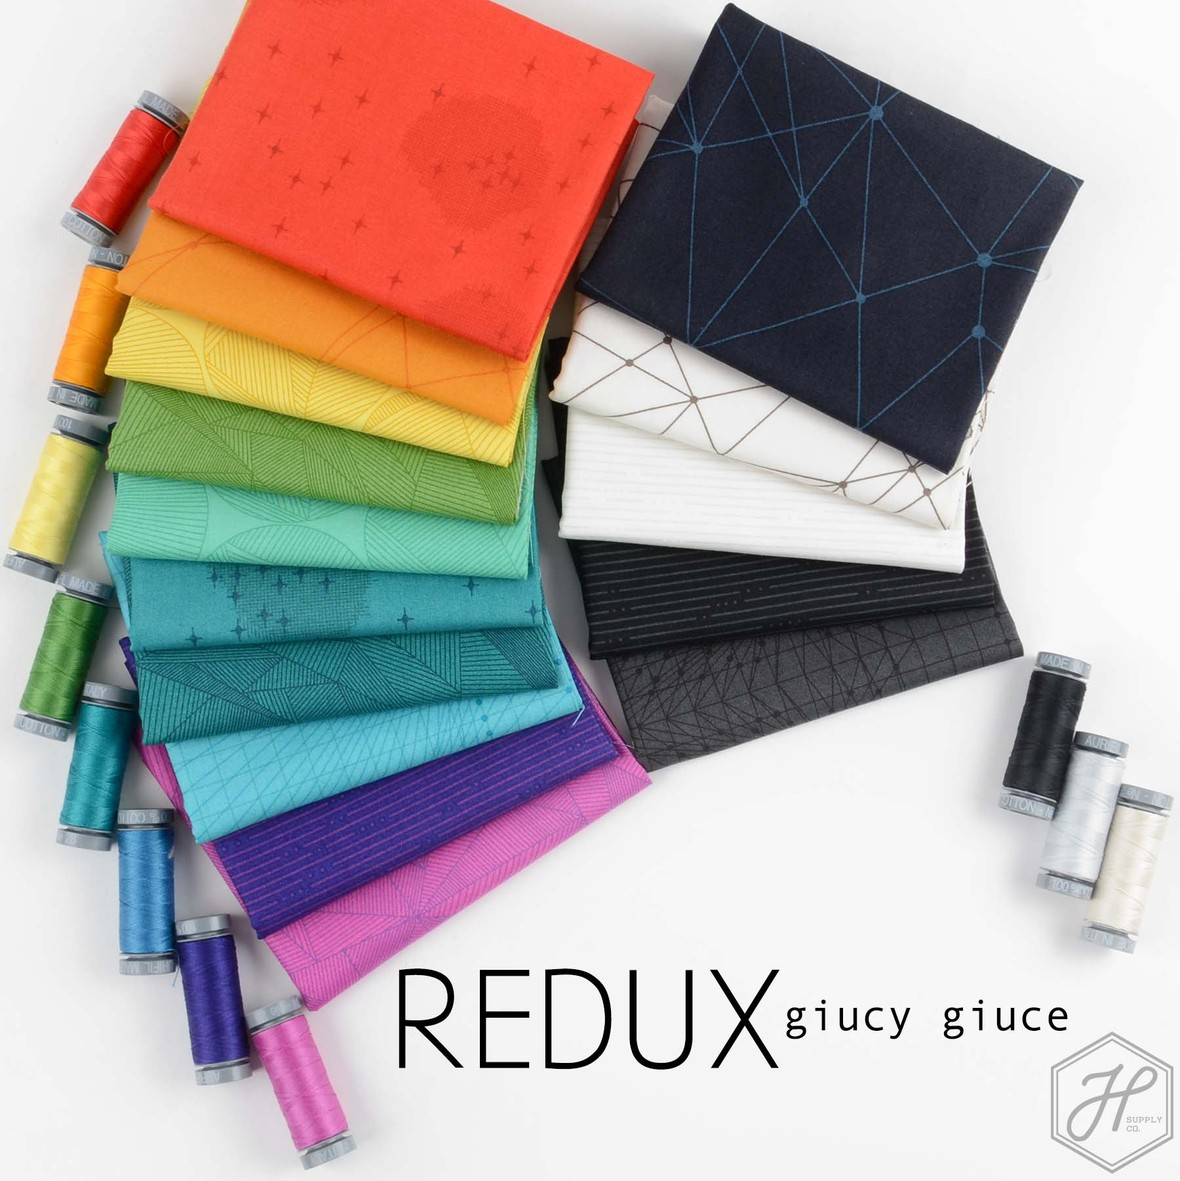 Redux Fabric Poster